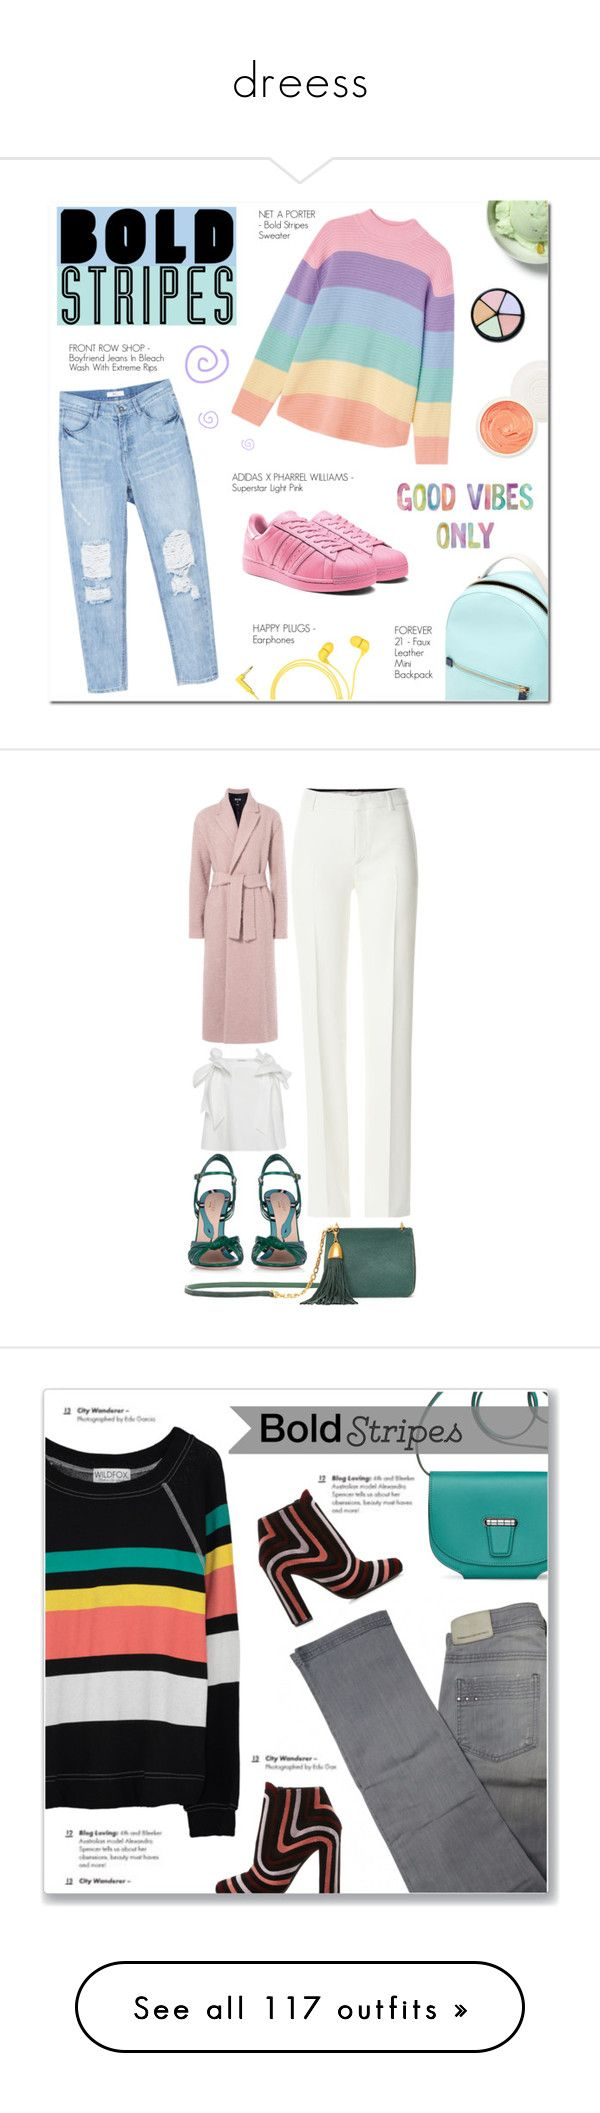 """""""dreess"""" by sebaaldomur-1 ❤ liked on Polyvore featuring Forever 21, Happy Plugs, Christian Dior, adidas, PastelColors, swirl, BoldStripes, supestar, Emilio Pucci and Gucci"""